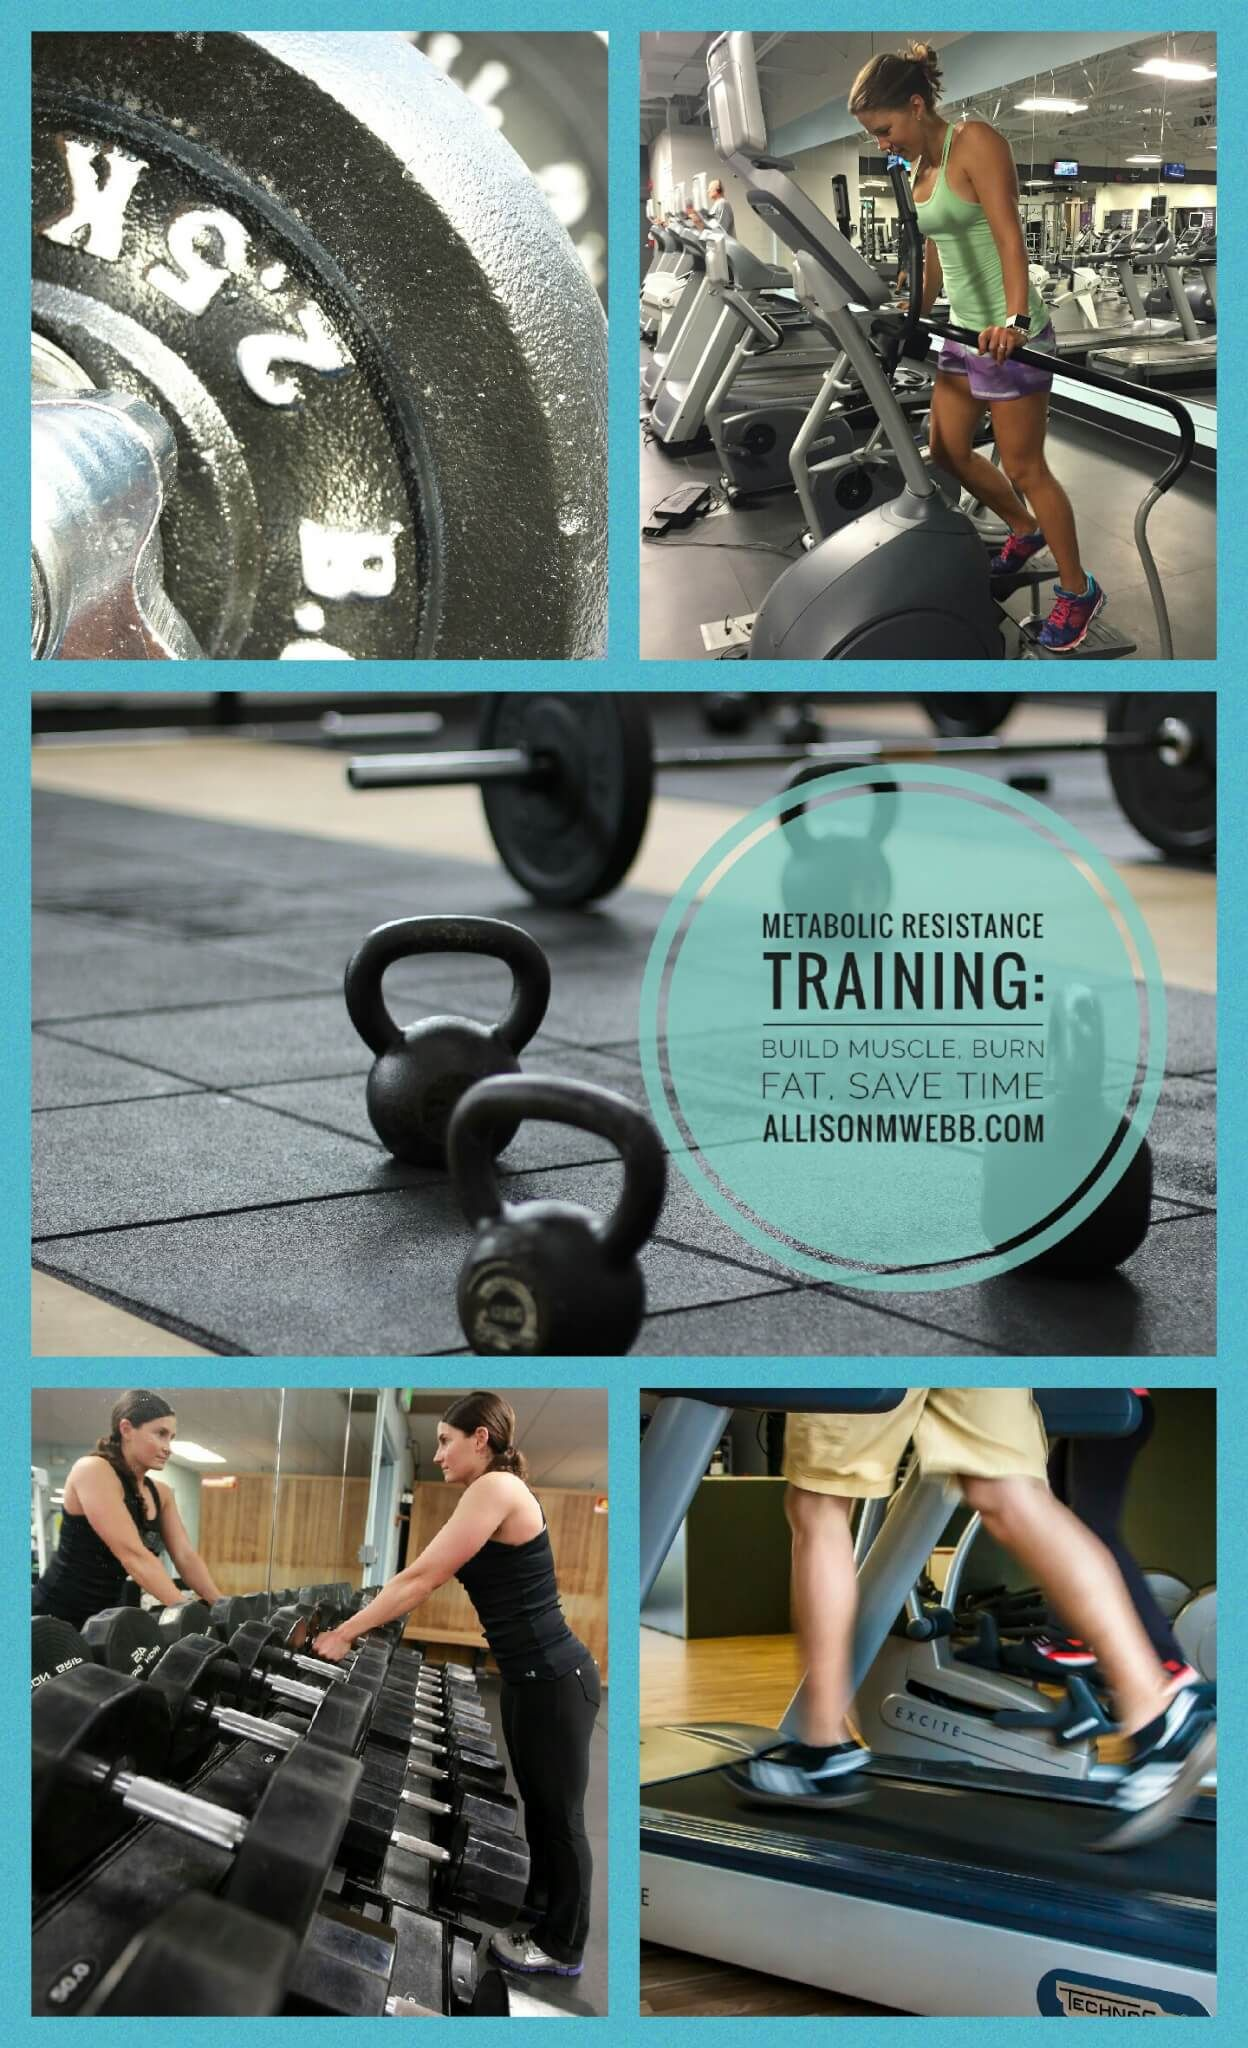 Metabolic Resistance Training: Build muscle, burn fat, save